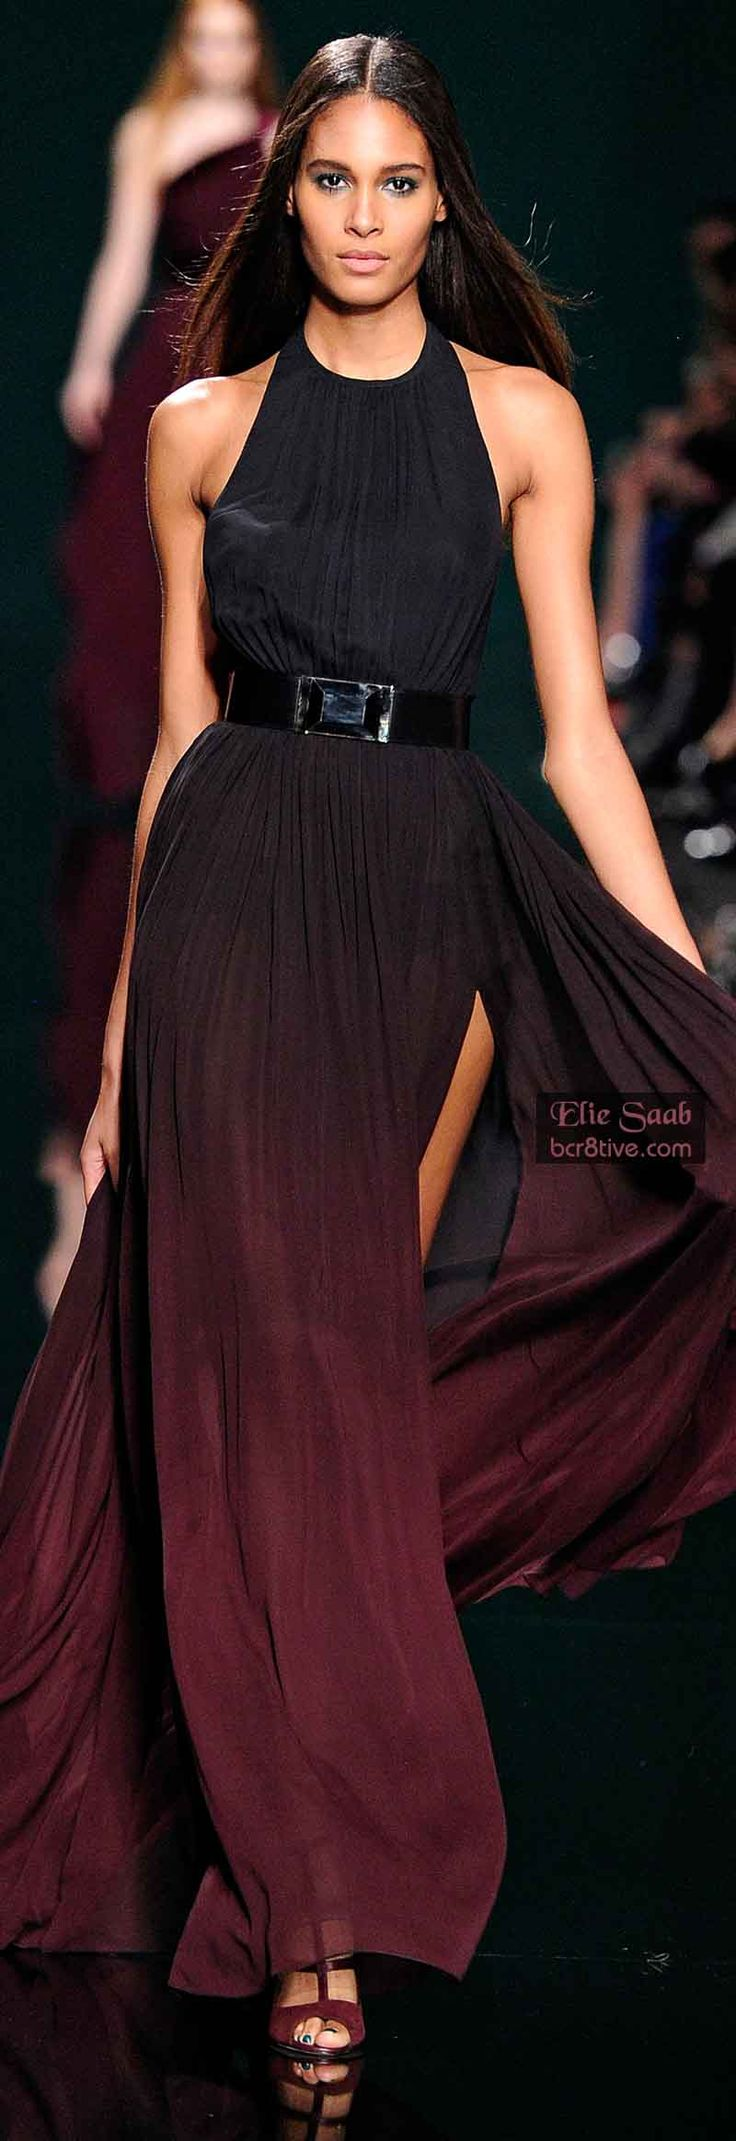 best partiesamourdings images on pinterest couture